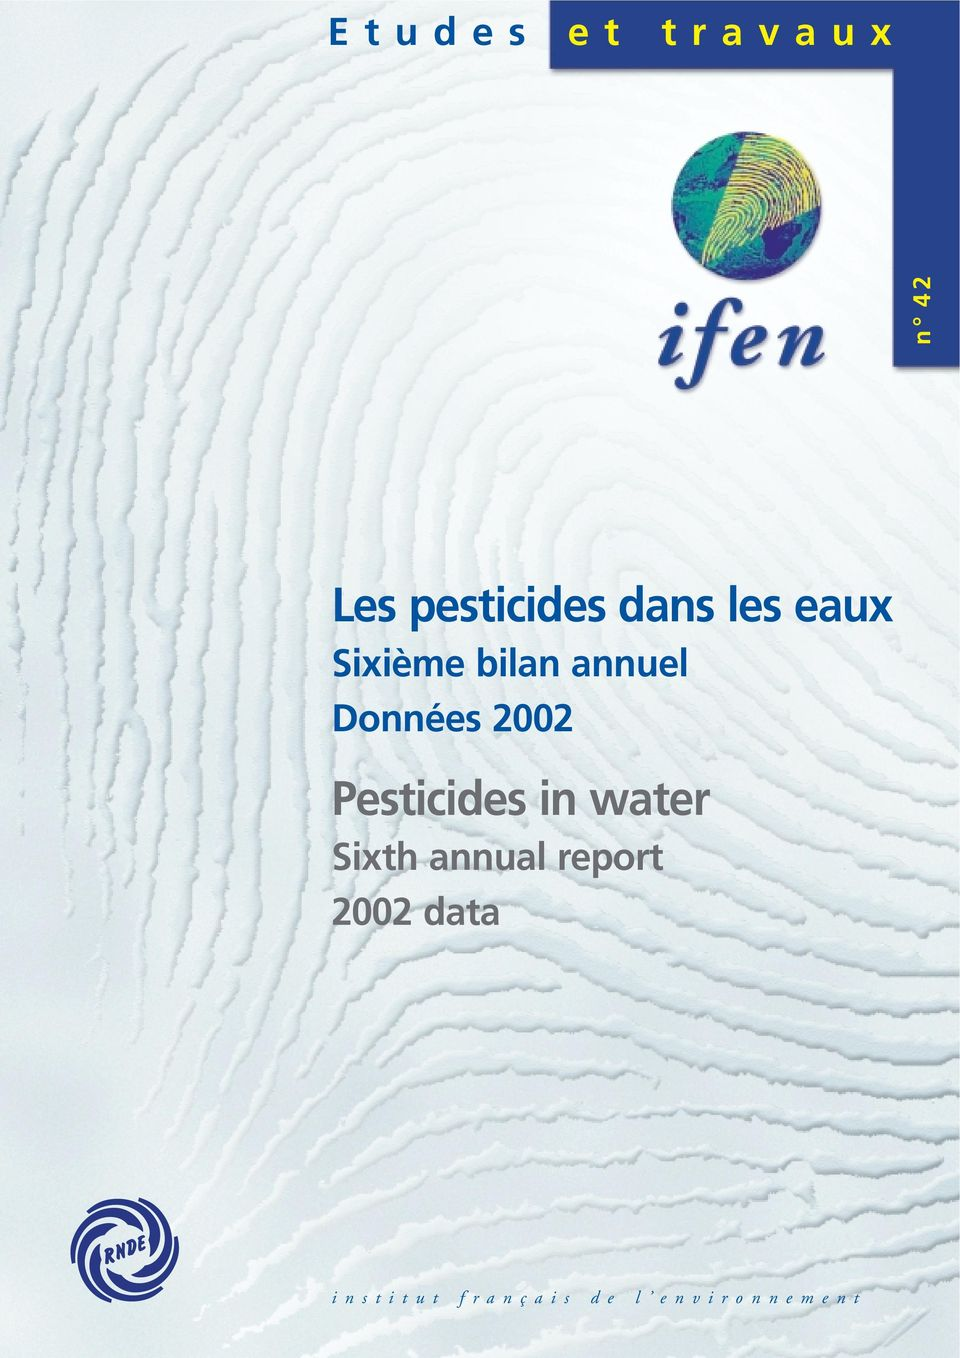 Pesticides in water Sixth annual report